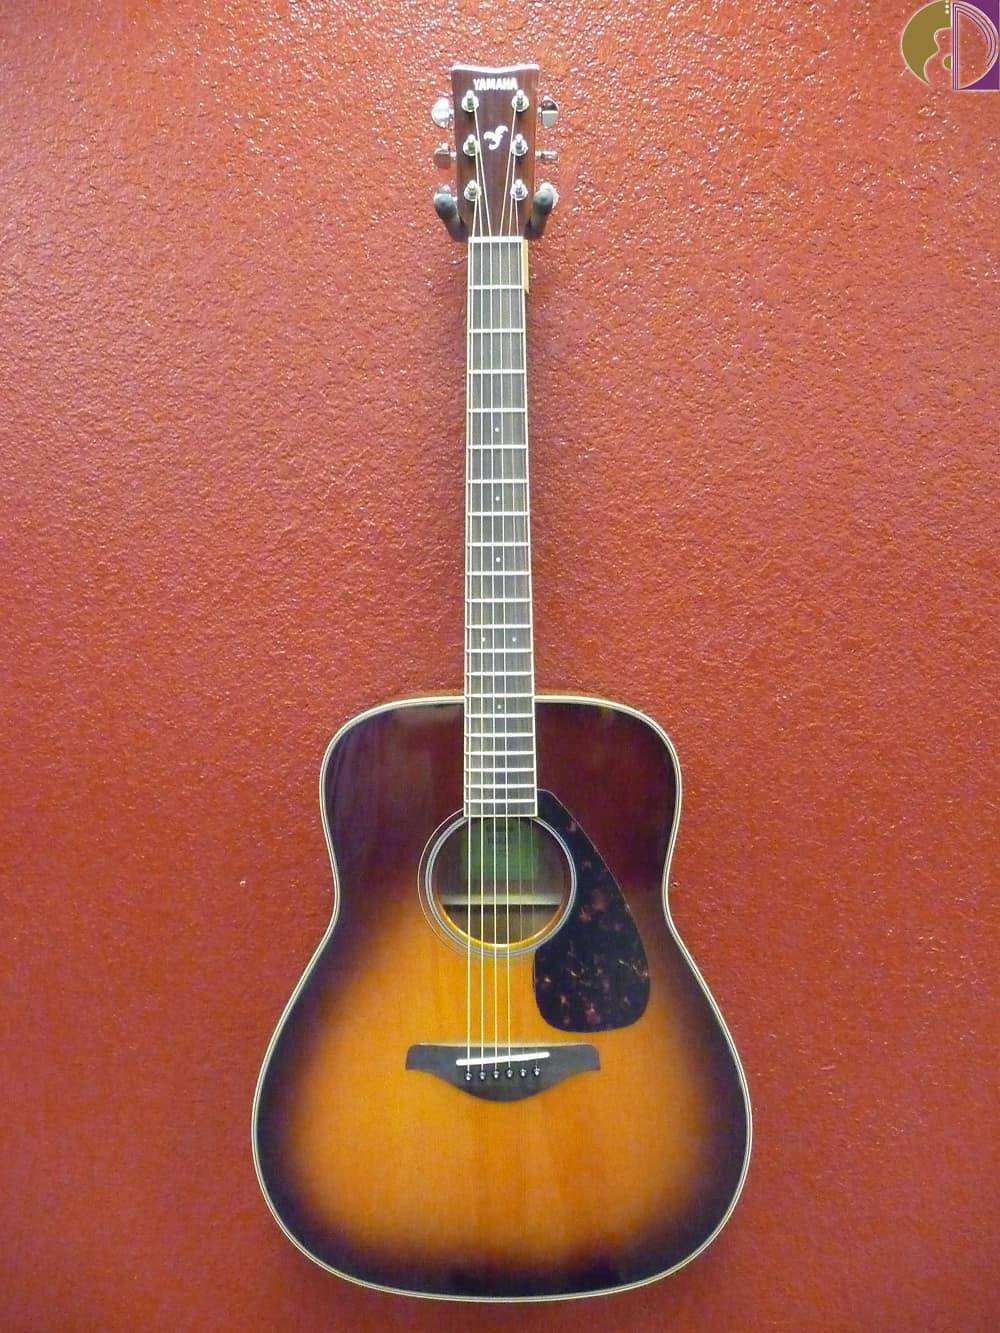 Yamaha fg820 dreadnought acoustic guitar brown sunburst for Yamaha fg820 review